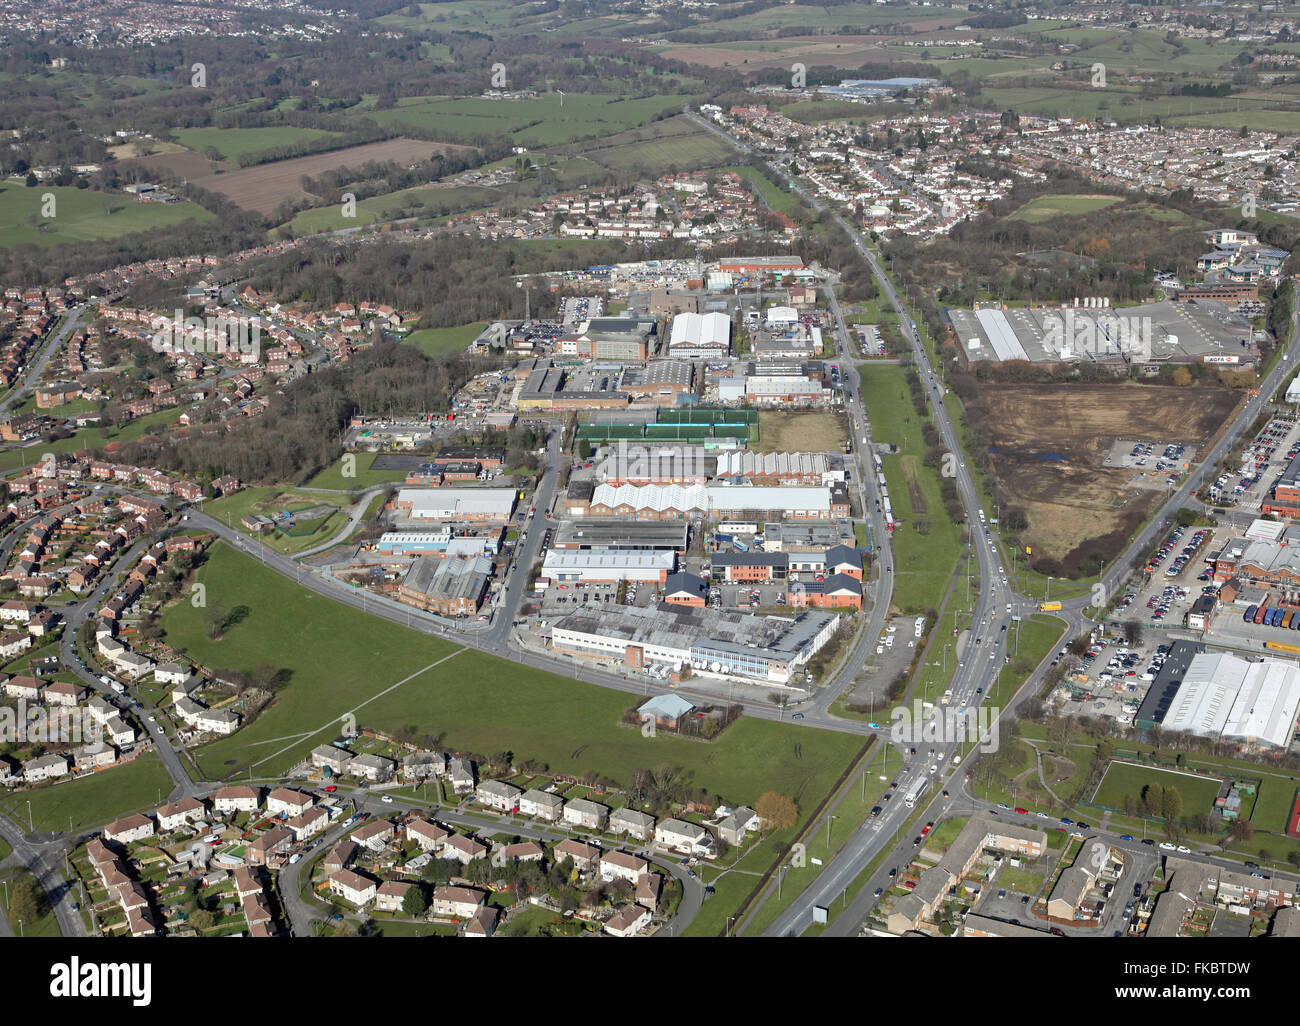 aerial view of Coal Road and Limewood Approach with the Leeds Ring Road A6120, UK - Stock Image